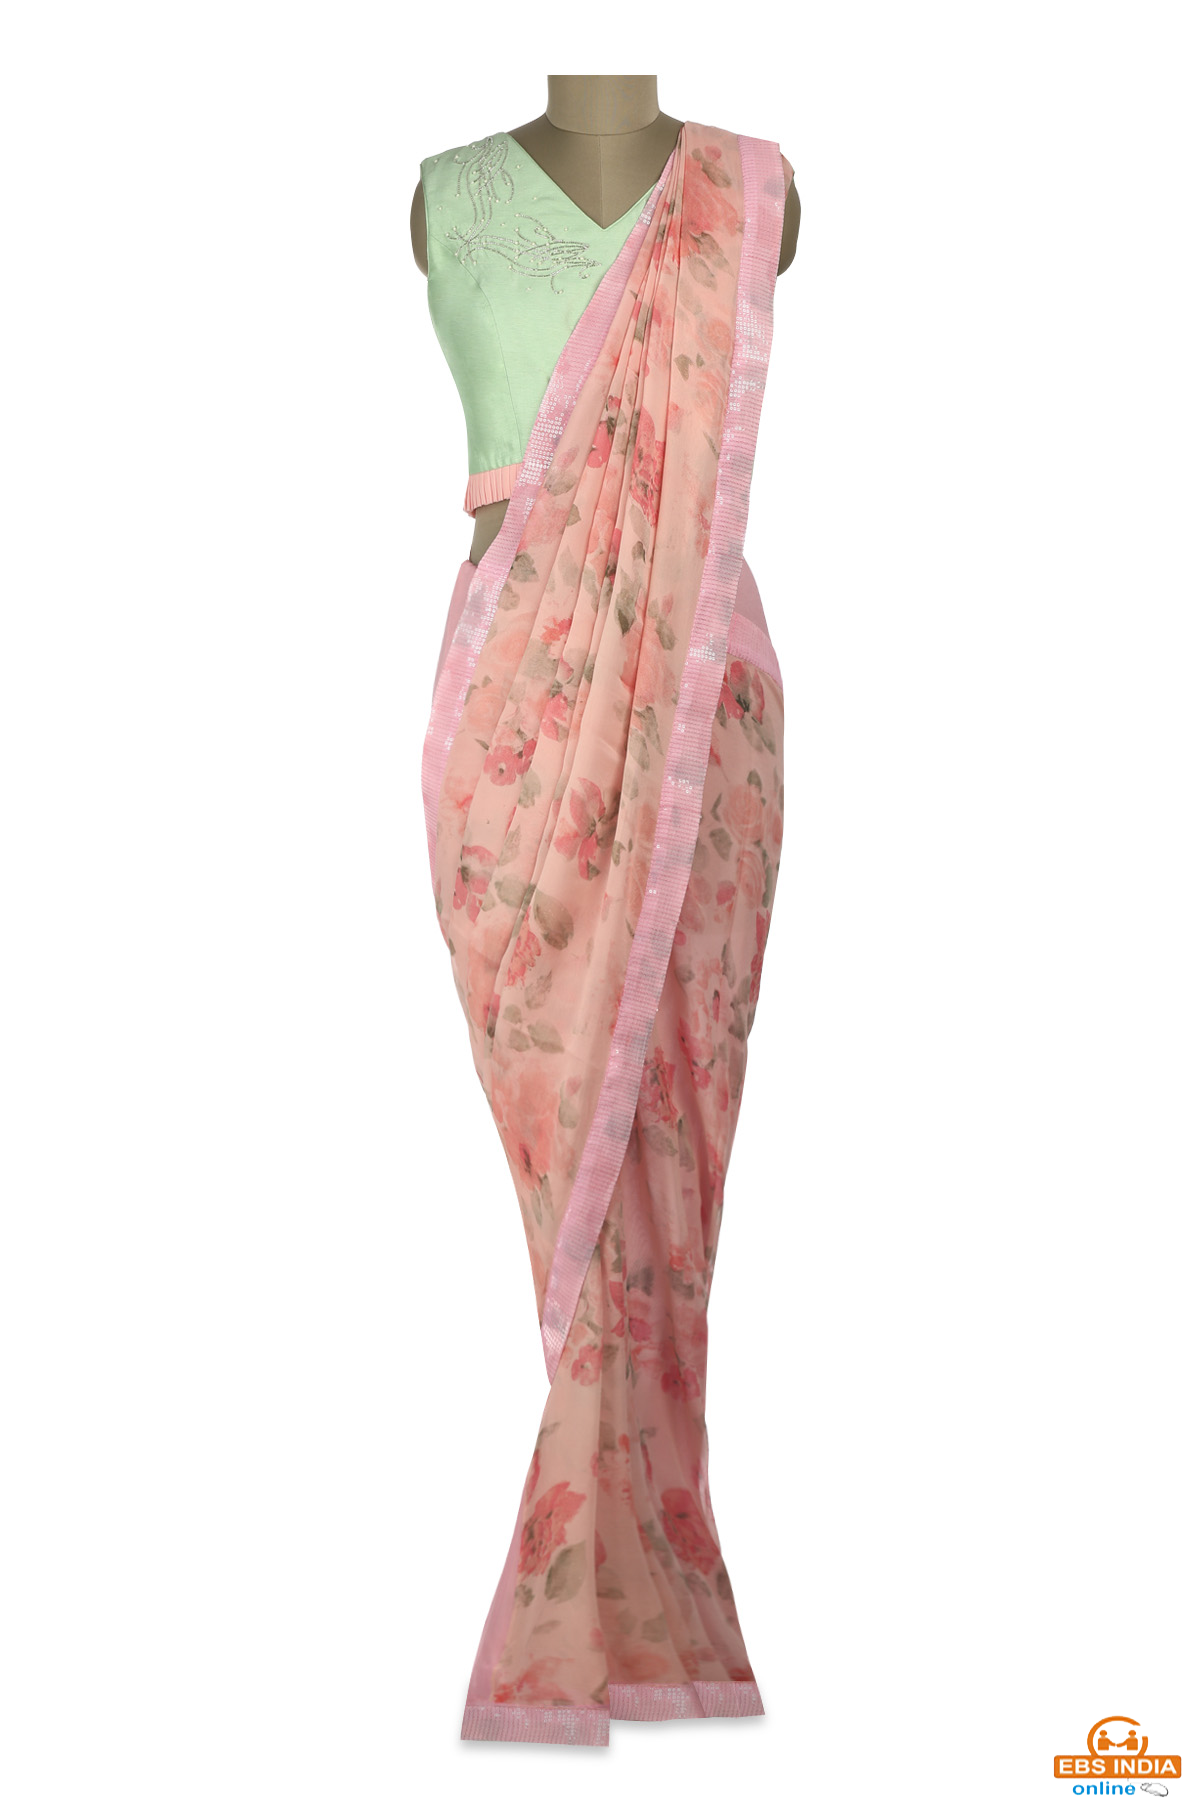 Shop For Beautiful & Traditional Sarees From TheHLabel!